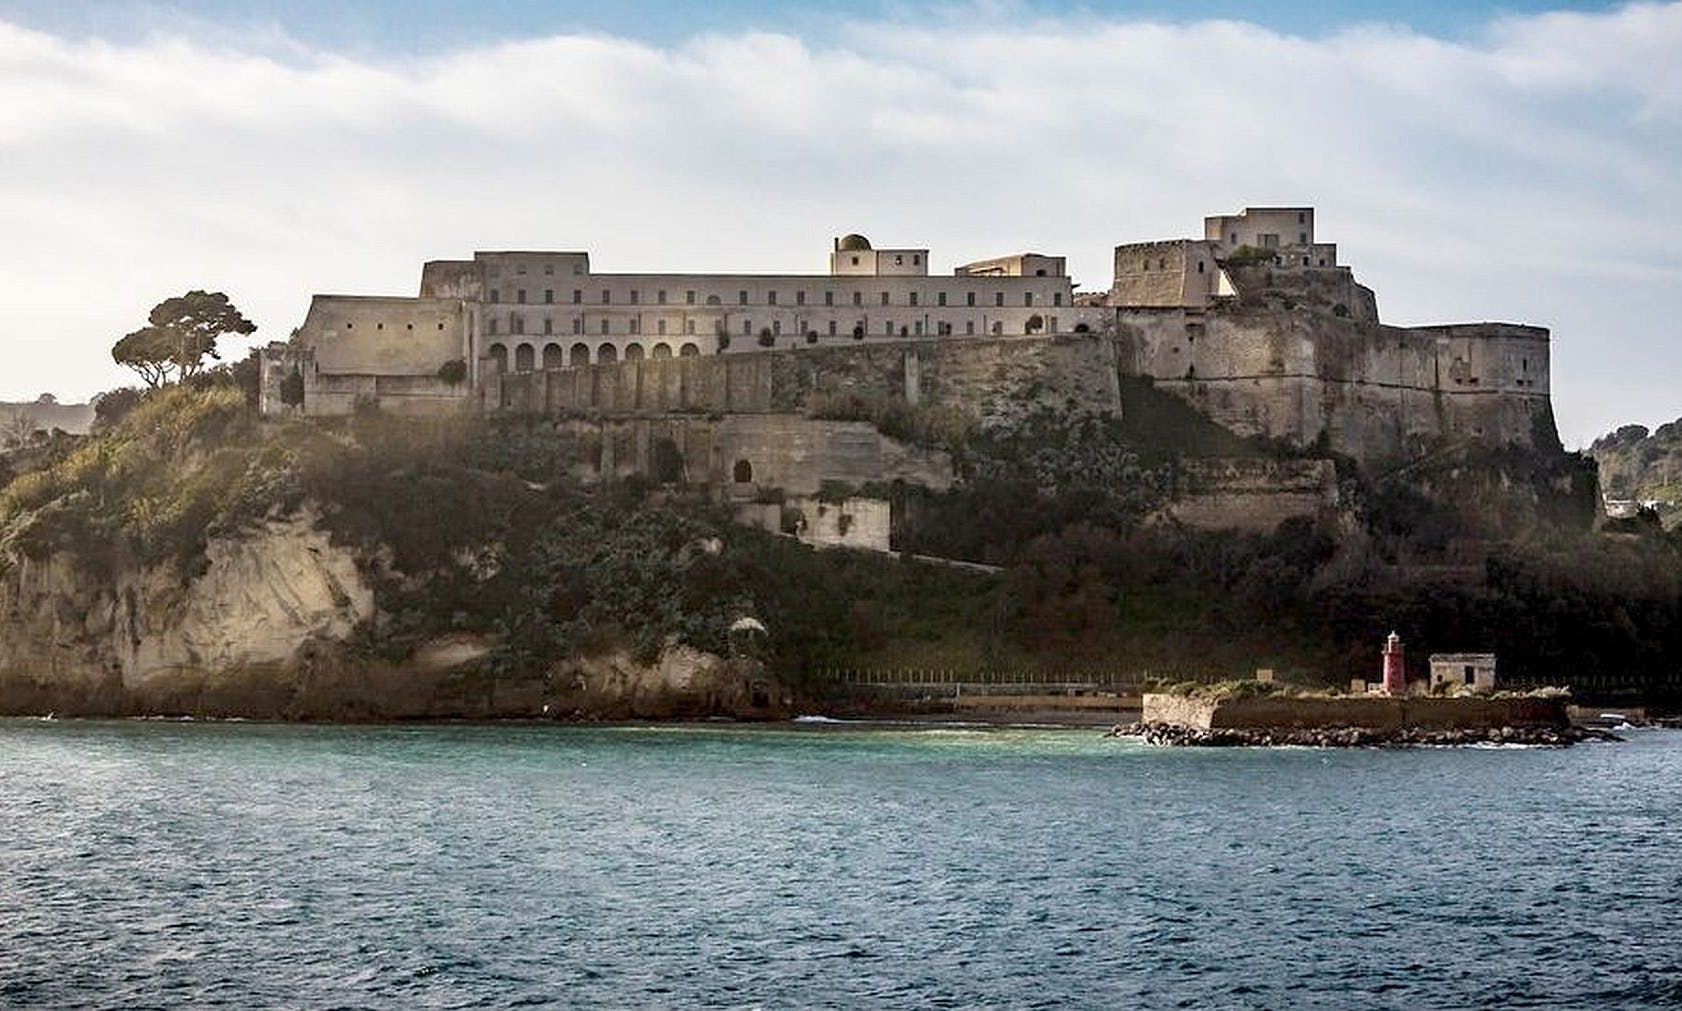 Archeology and tour in the island in the Napoli-Pozzuoli bay